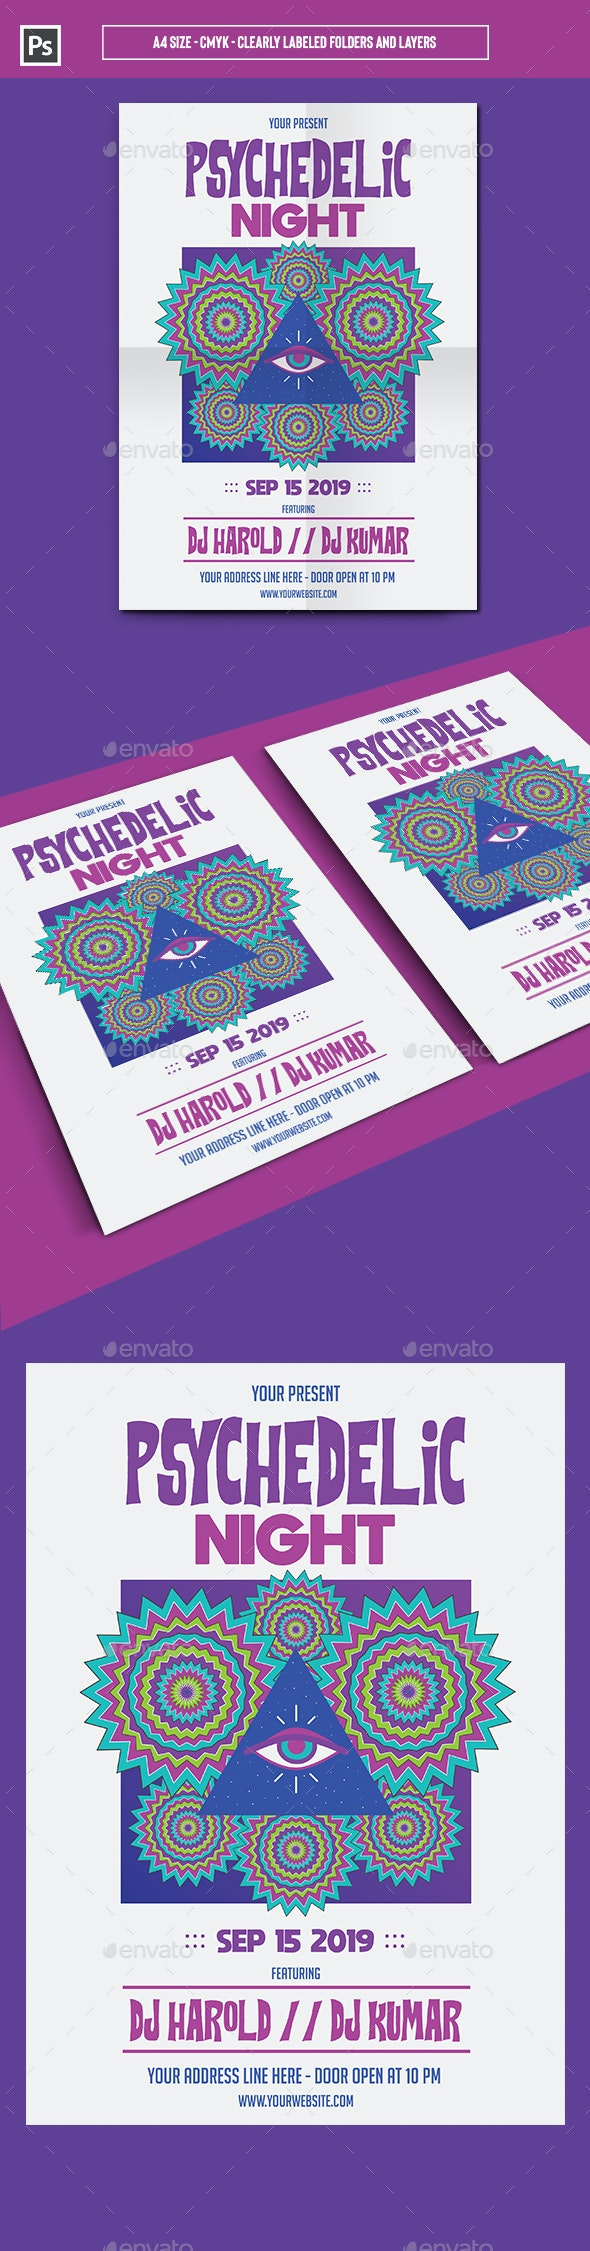 Psychedelic Night Flyer Template - Events Flyers